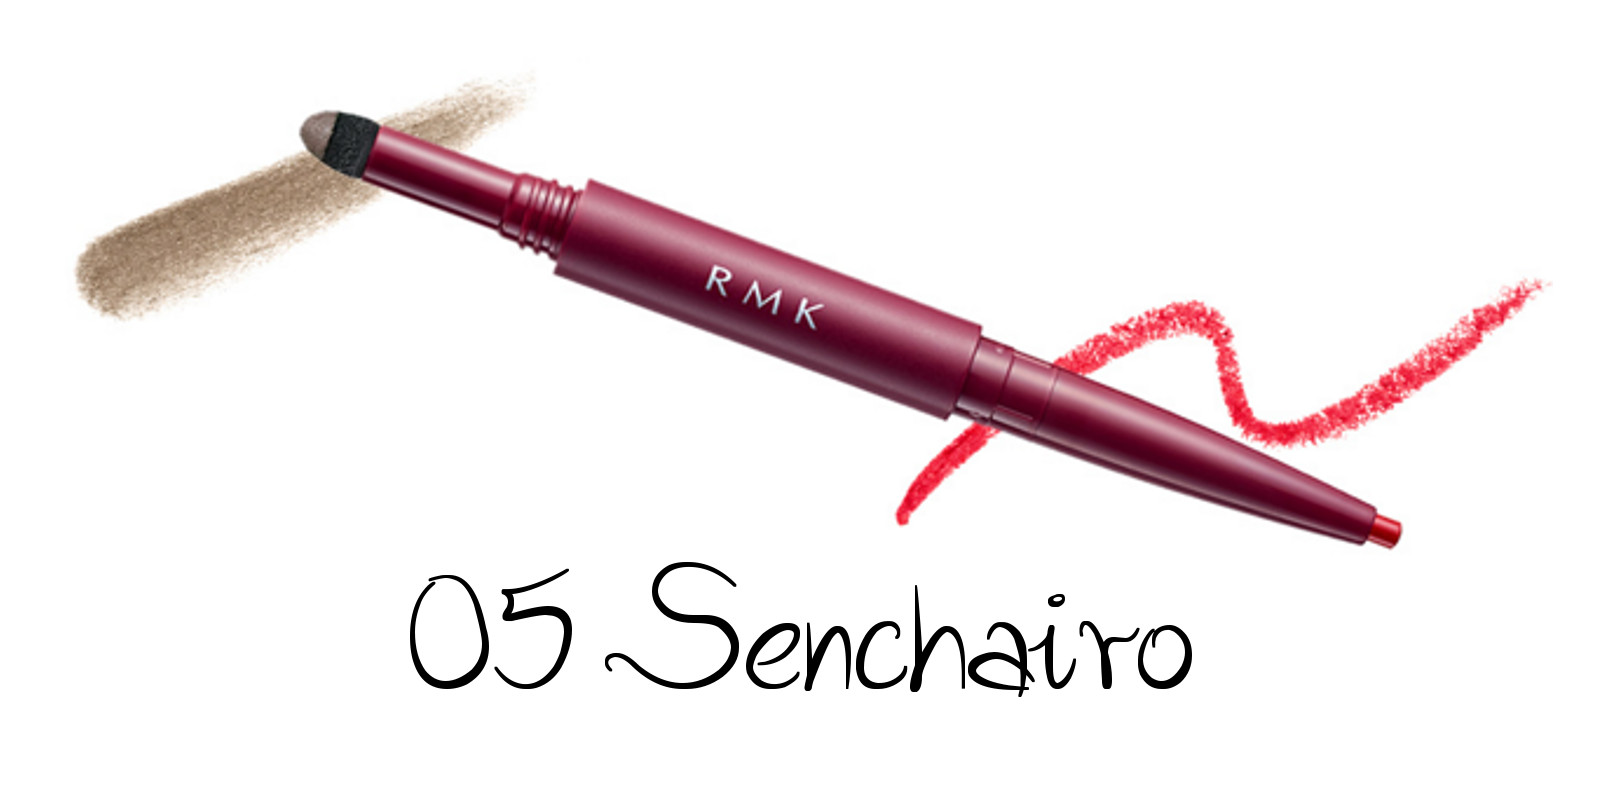 RMK Autumn Winter Collection 2020 Kiseru W Liner 05 Senchairo